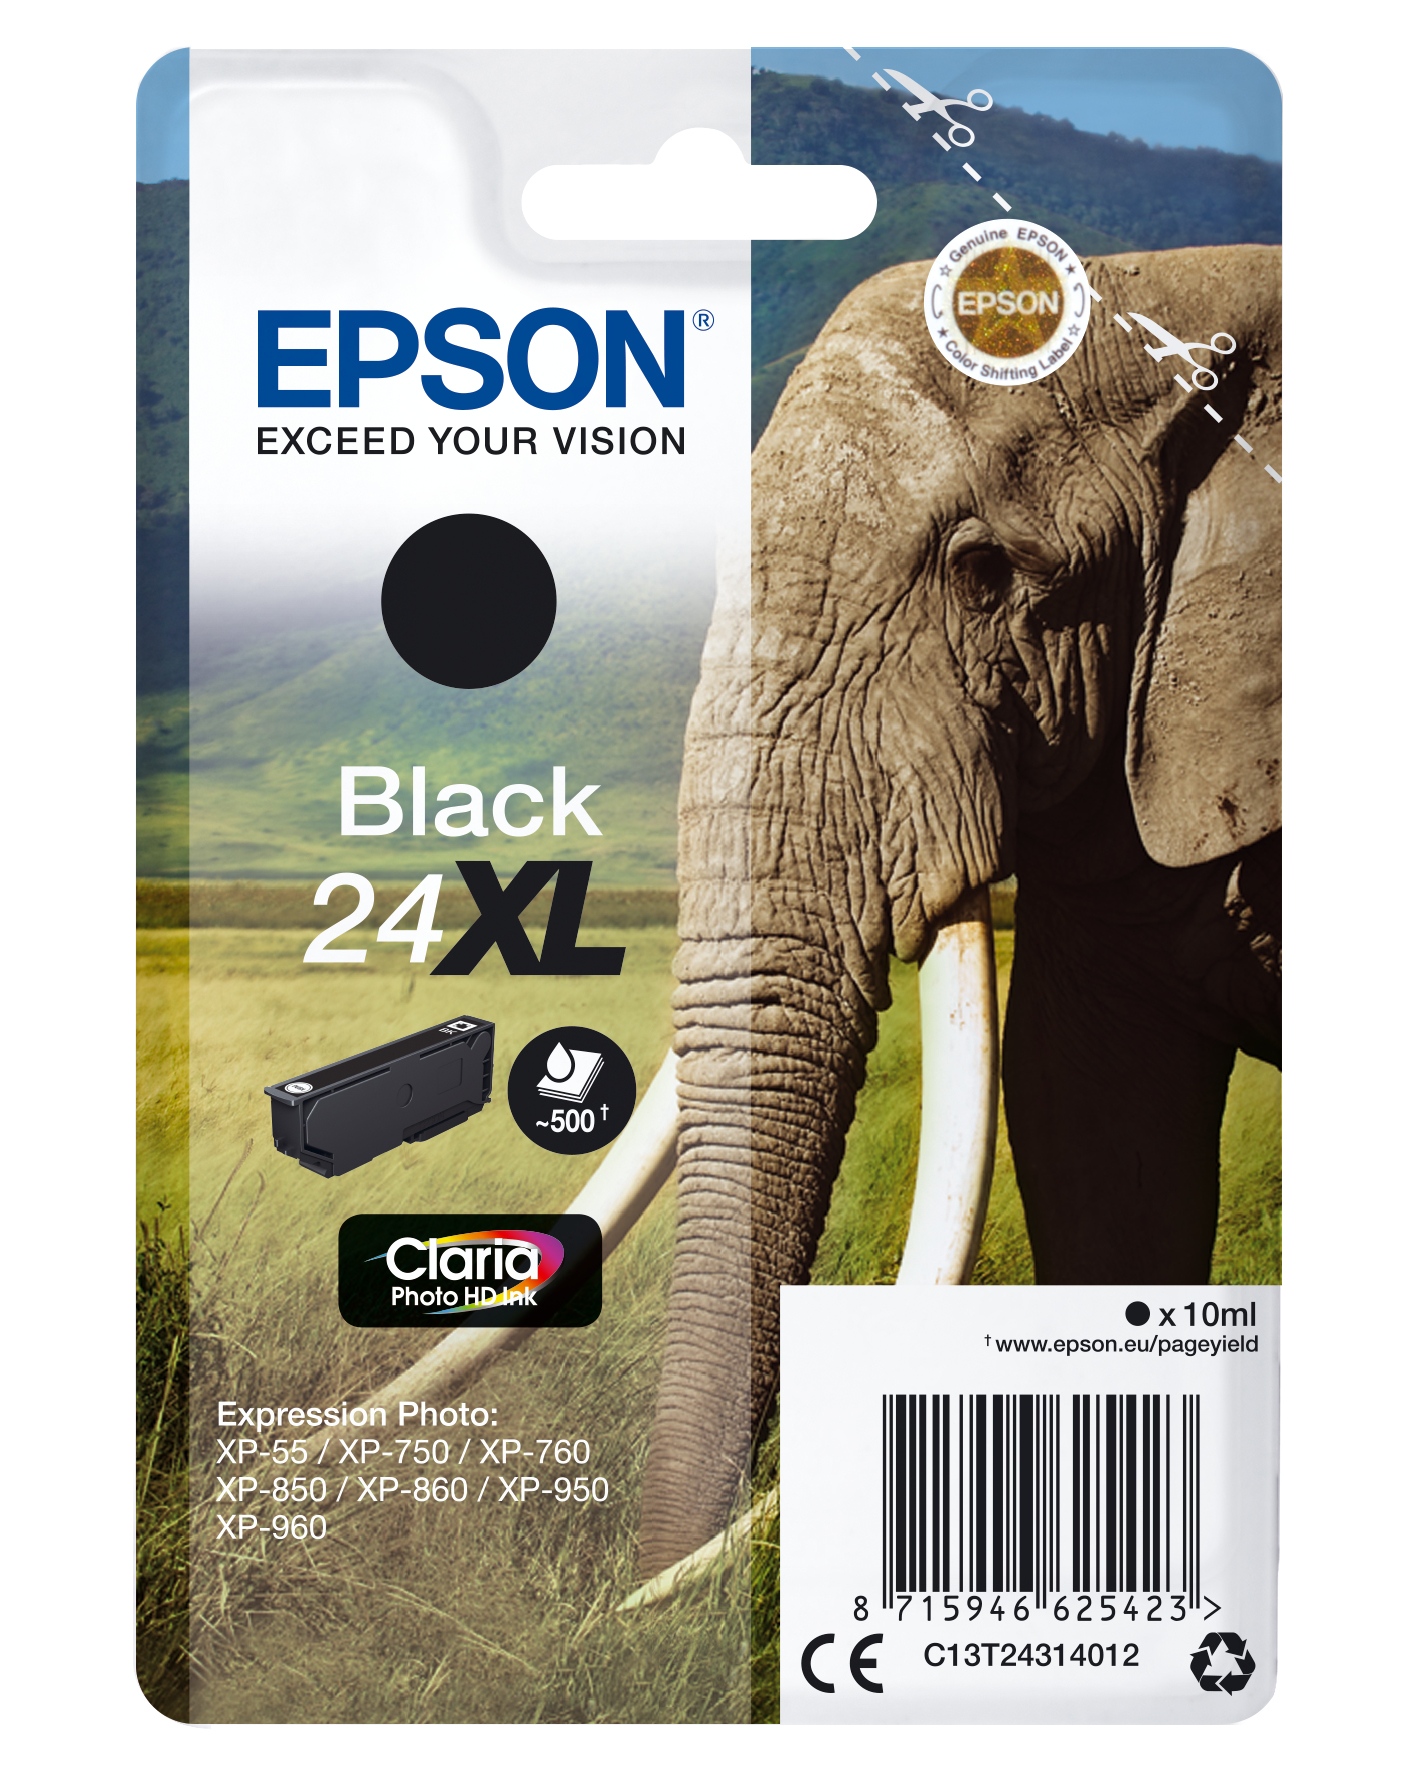 Epson Elephant Singlepack Black 24XL Claria Photo HD Ink